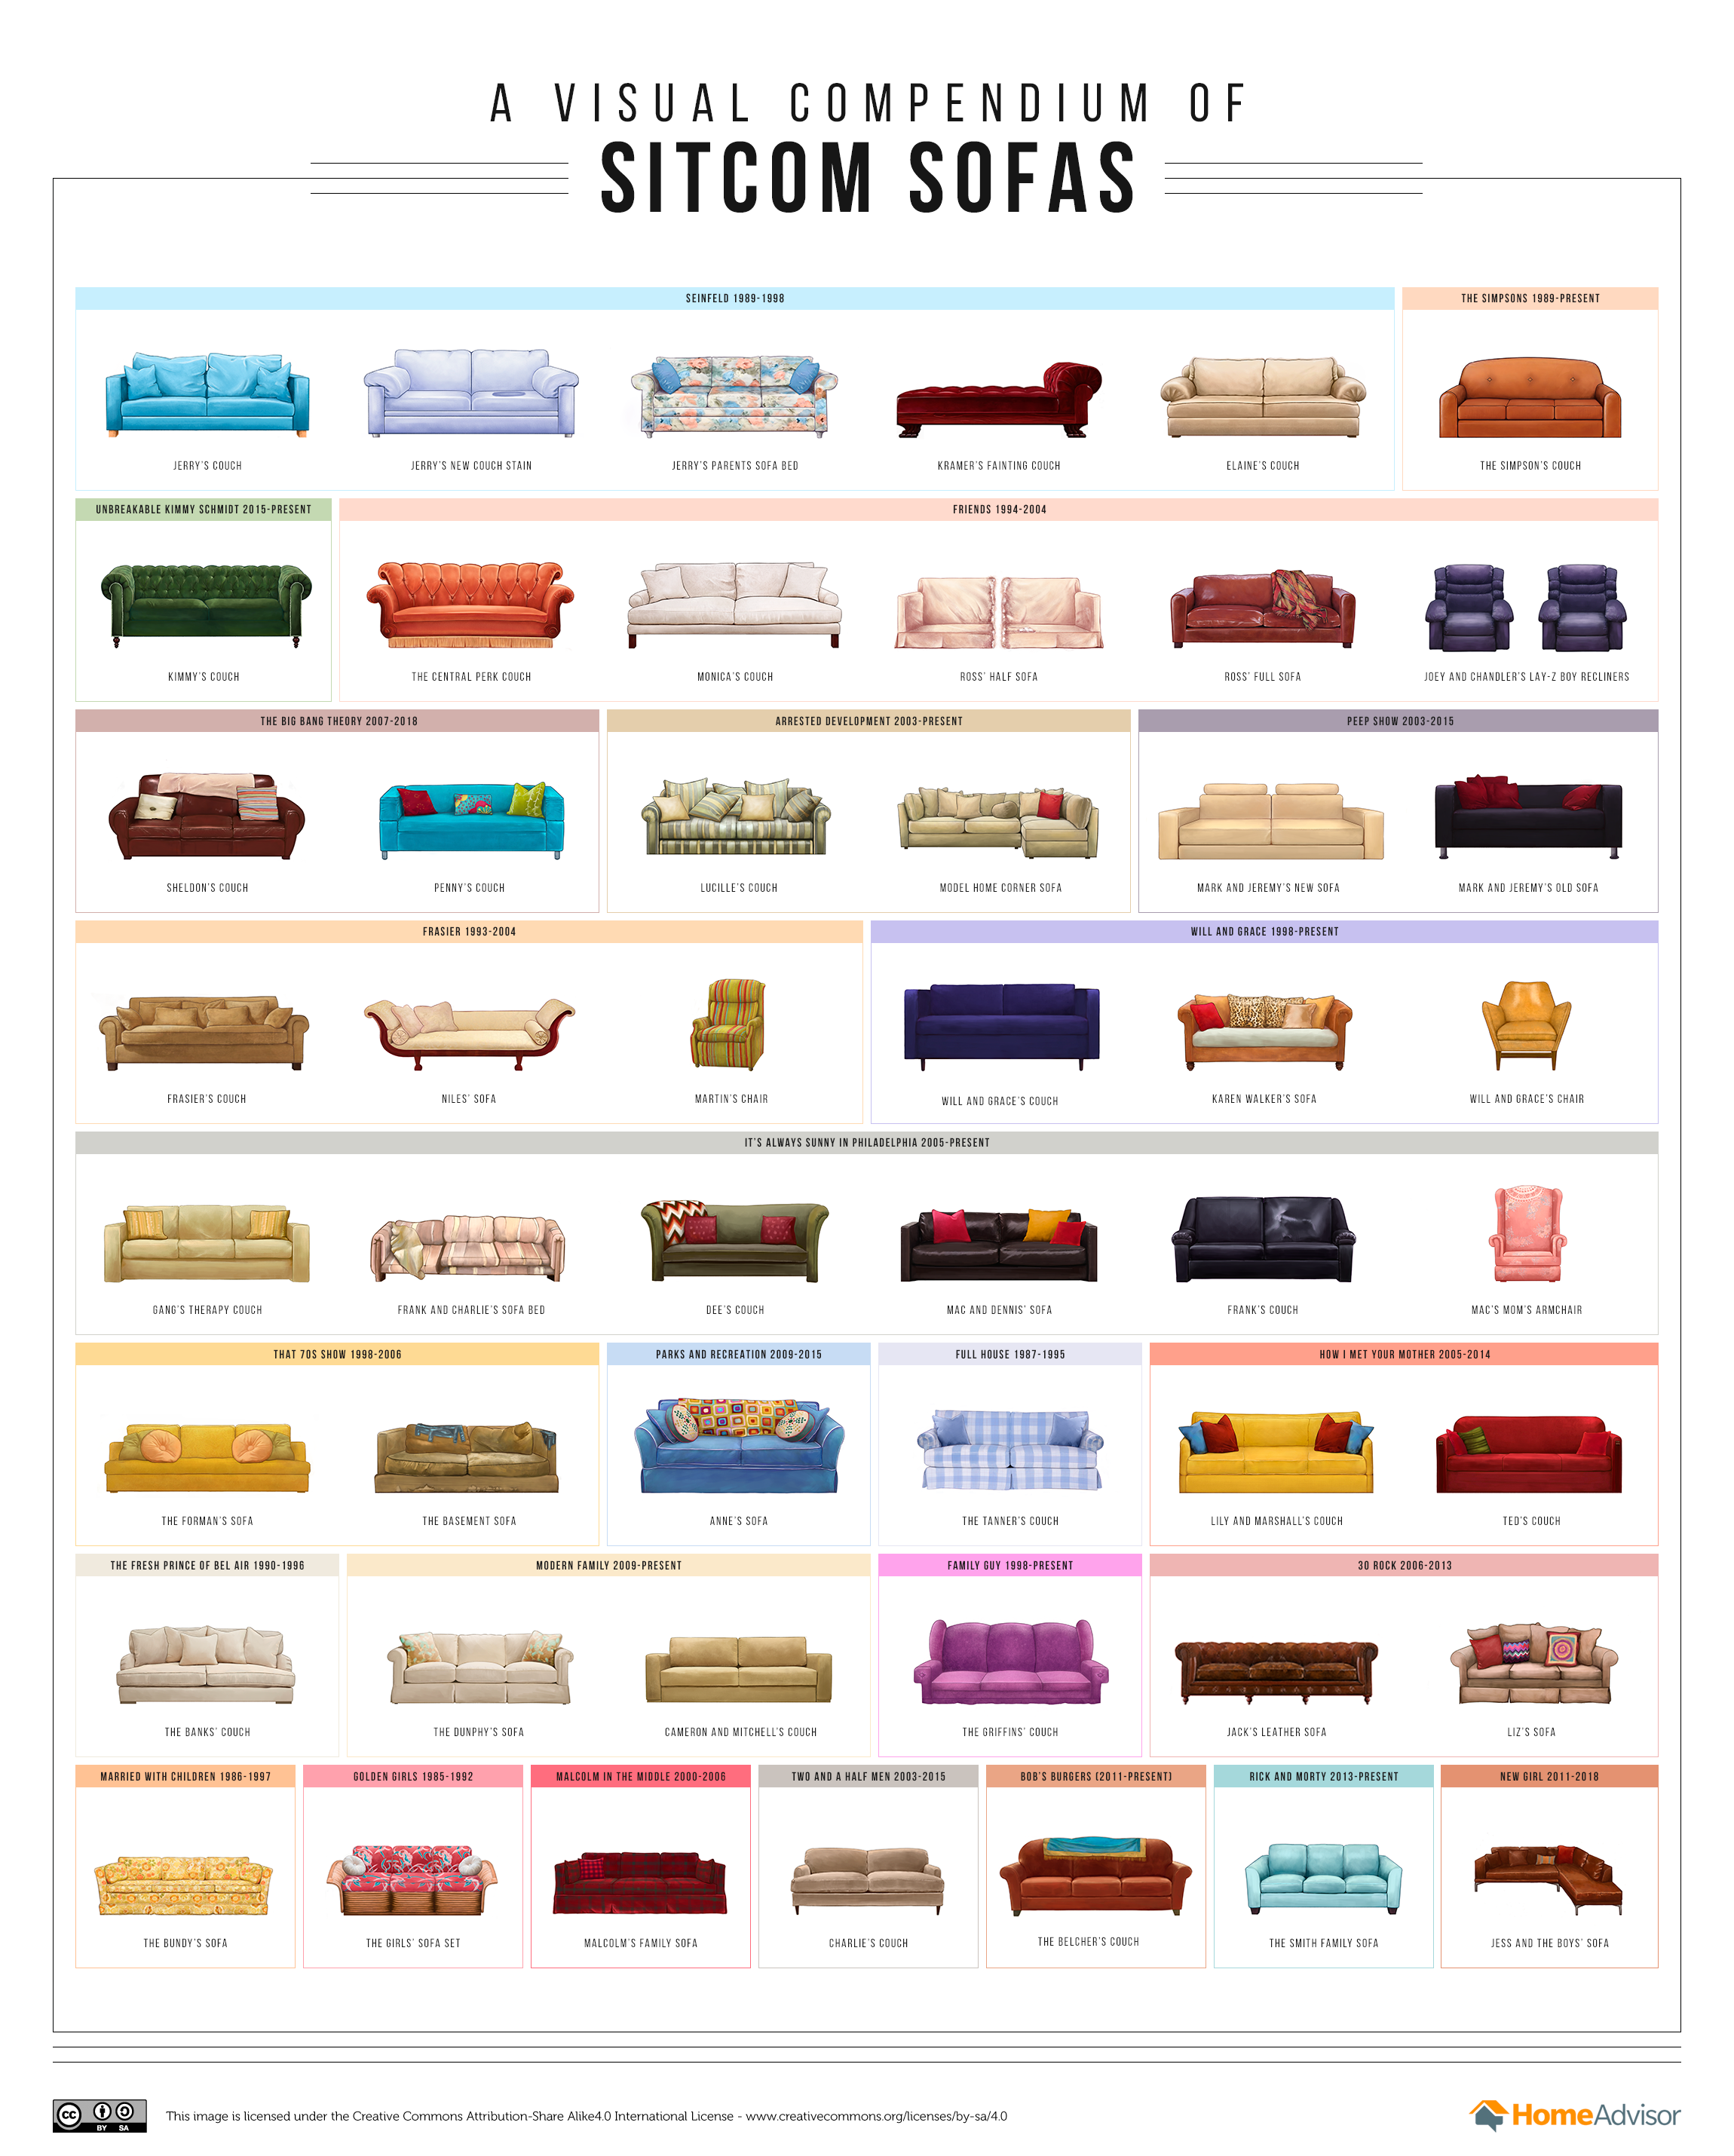 A Visual Compendium of Sitcom Sofas infographic